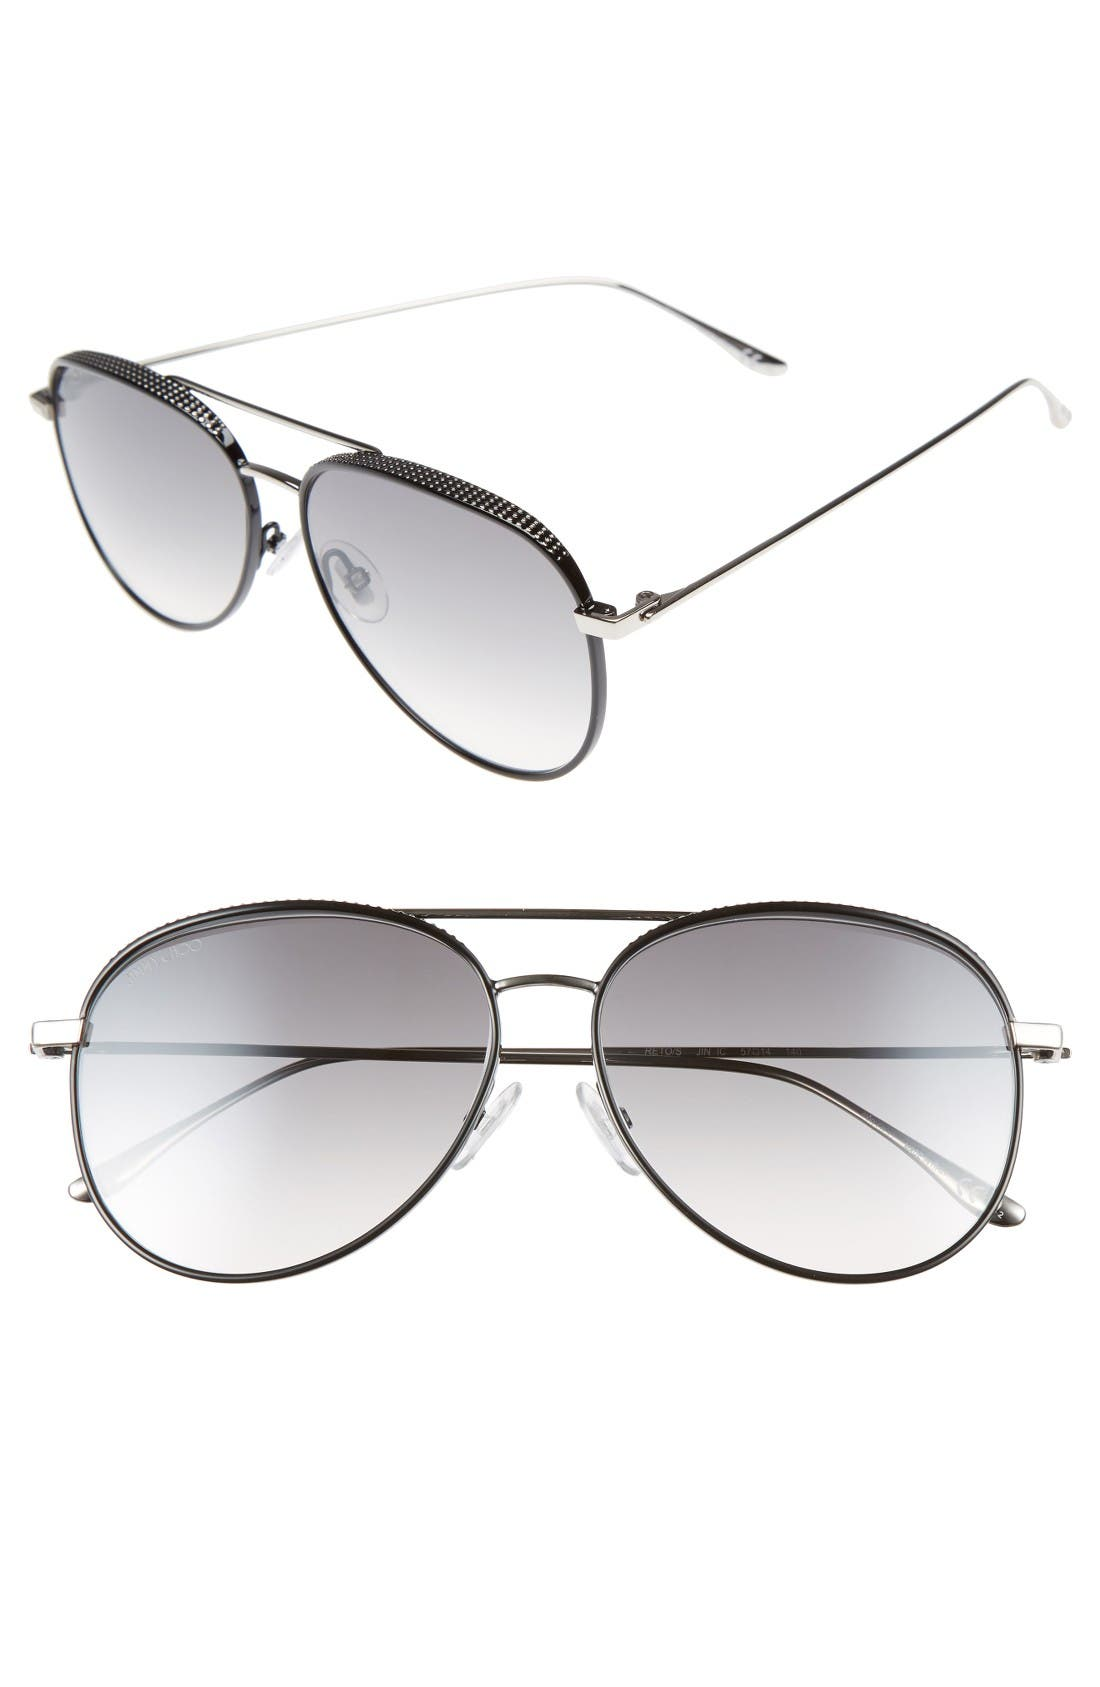 Jimmy Choo Reto 57mm Sunglasses